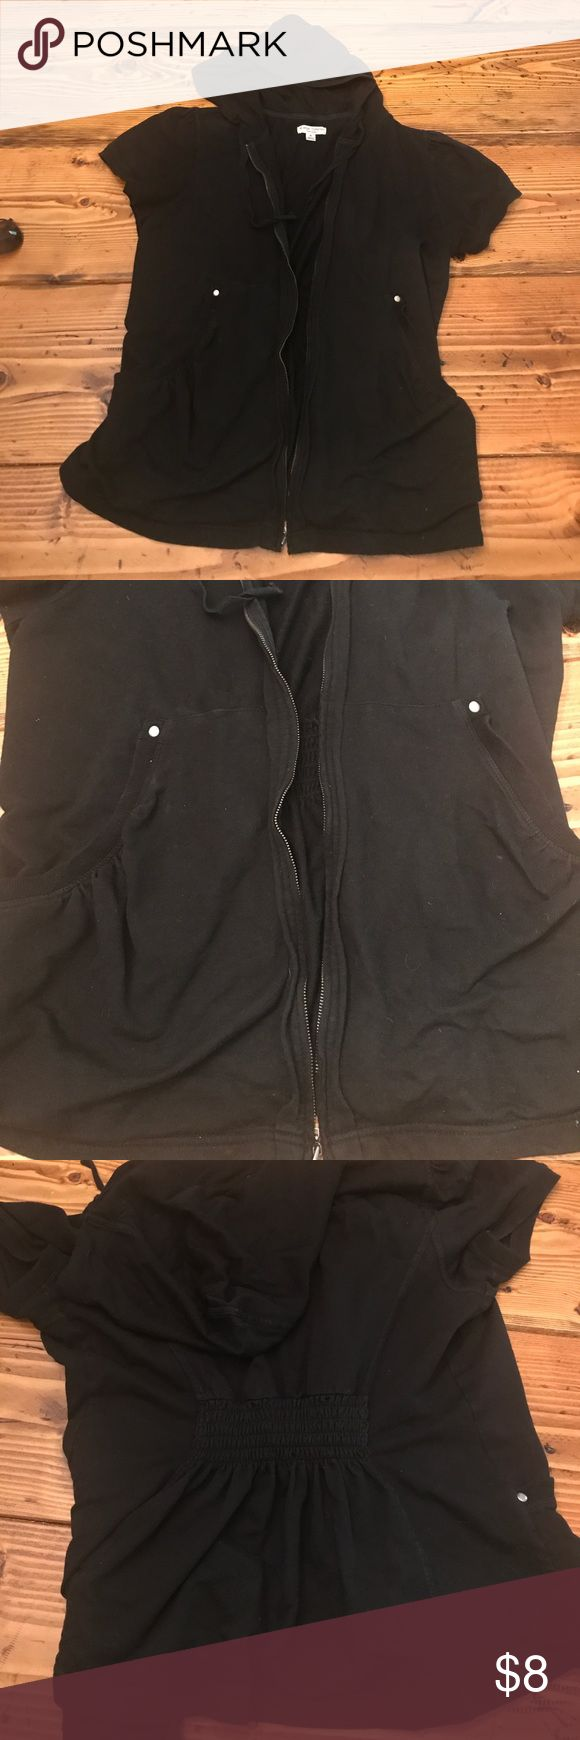 Black Maternity Short sleeve Jacket Cute jacket for summer time cover up or for style! Zipper is hard to zip and black is a little faded I loved this and wore it with both pregnancies! A great must have item for your baby bump! Liz Lange for Target Tops Sweatshirts & Hoodies